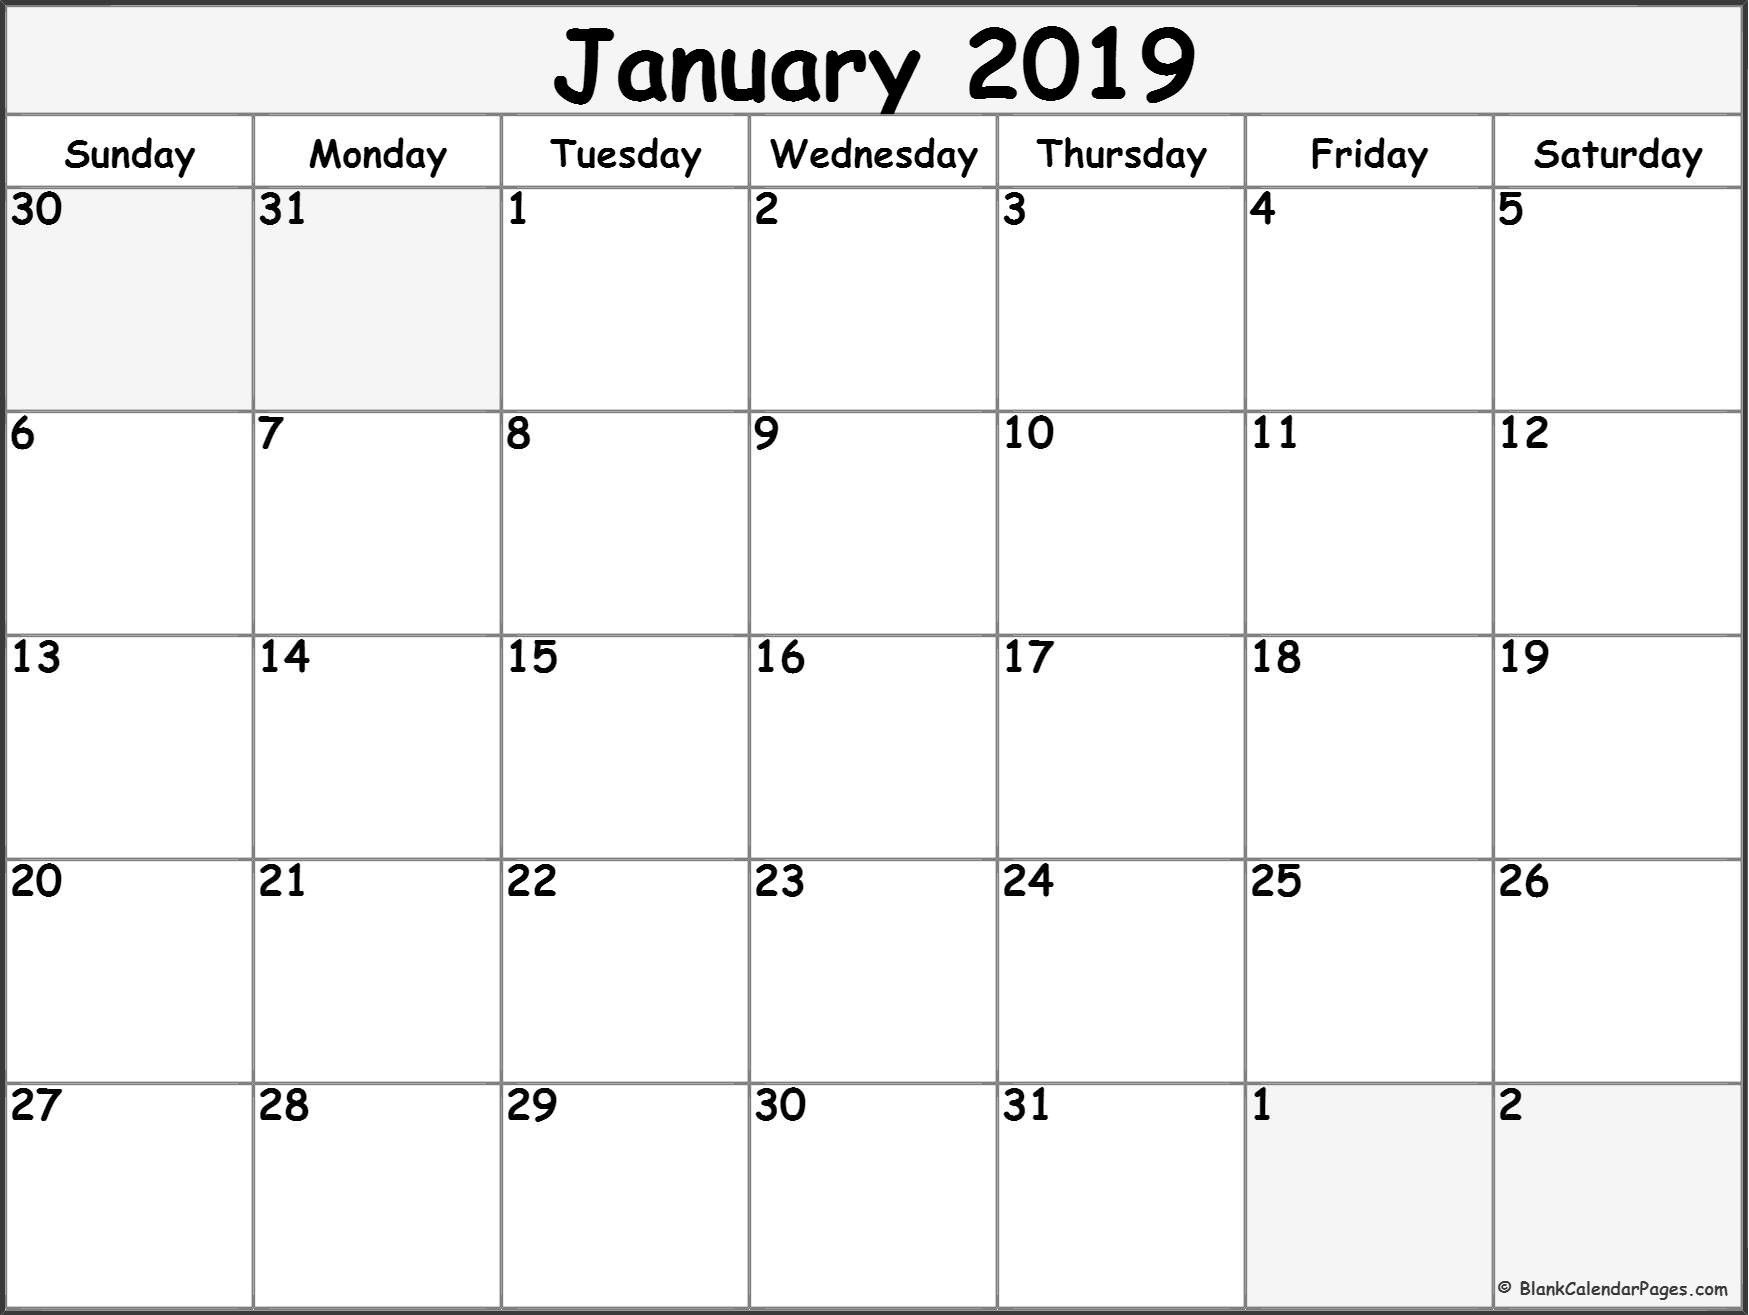 Free Printable Blank Calendars To Fill In - Calendar Printable Calendar That You Can Fill In Color In The Blocks